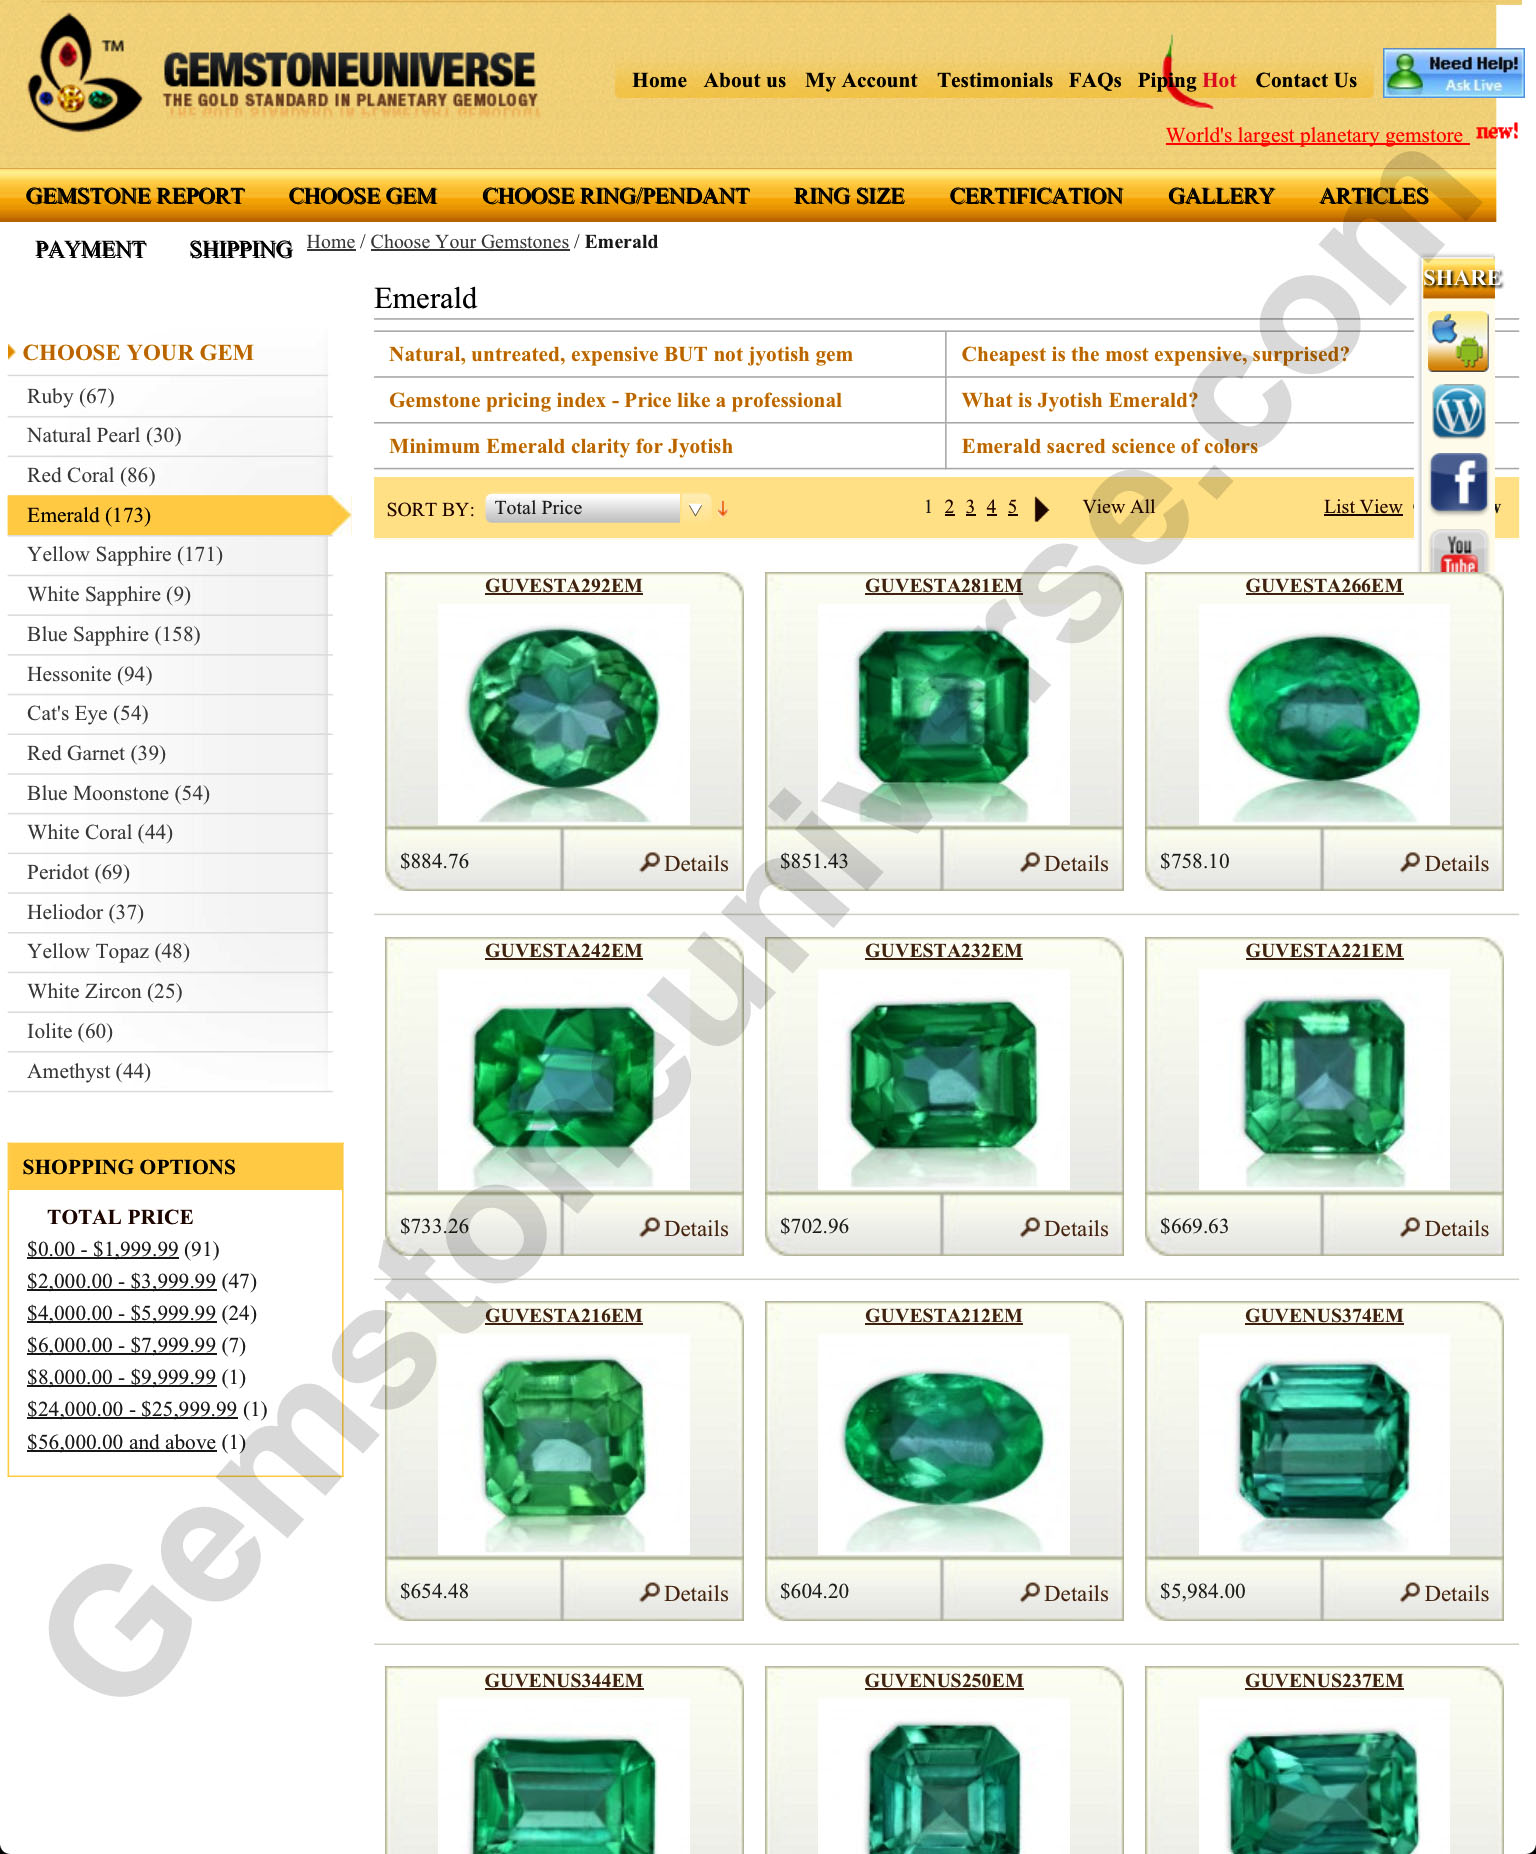 Astrological stones jyotish gemstones page 2 the grid view is a fantastic option to view color view the amazing range of nvjuhfo Images